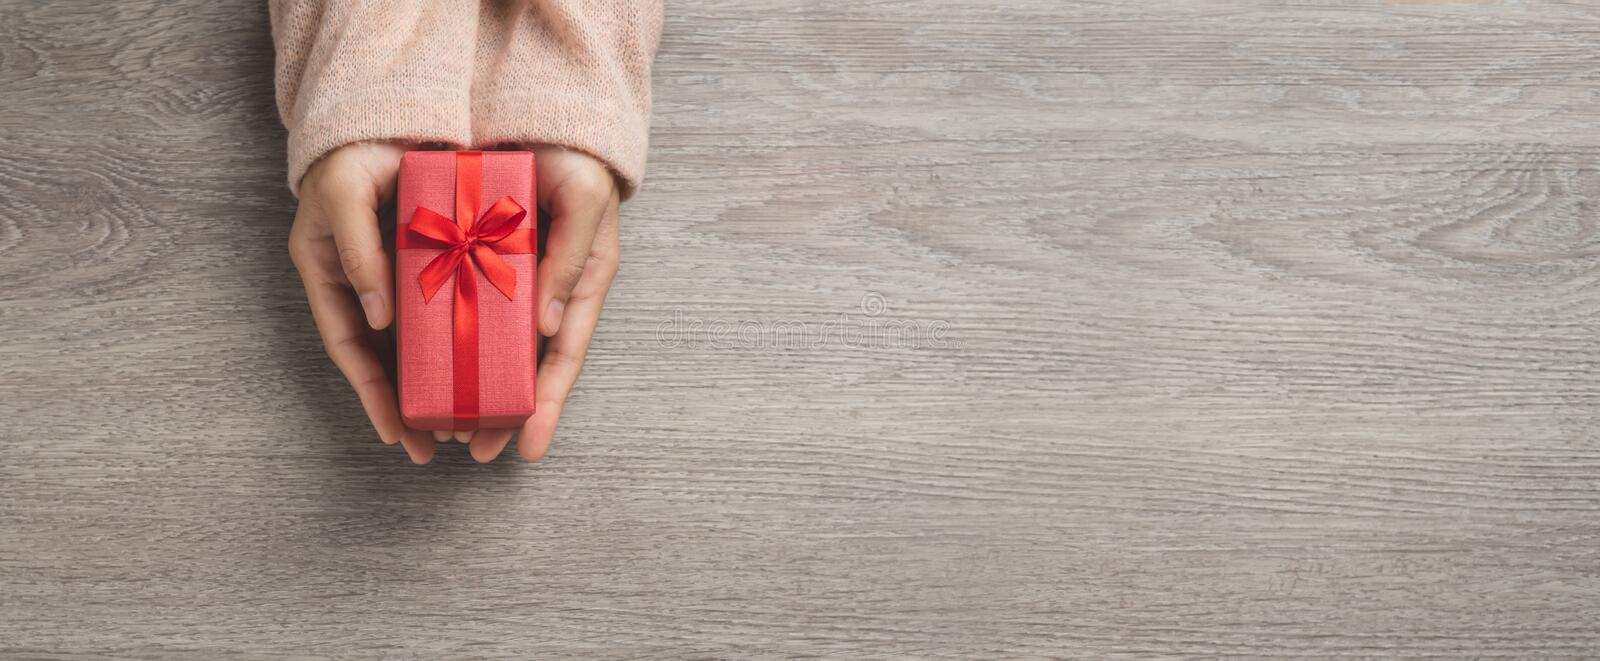 Top view of Woman hands is holding a small red gift box royalty free stock photography